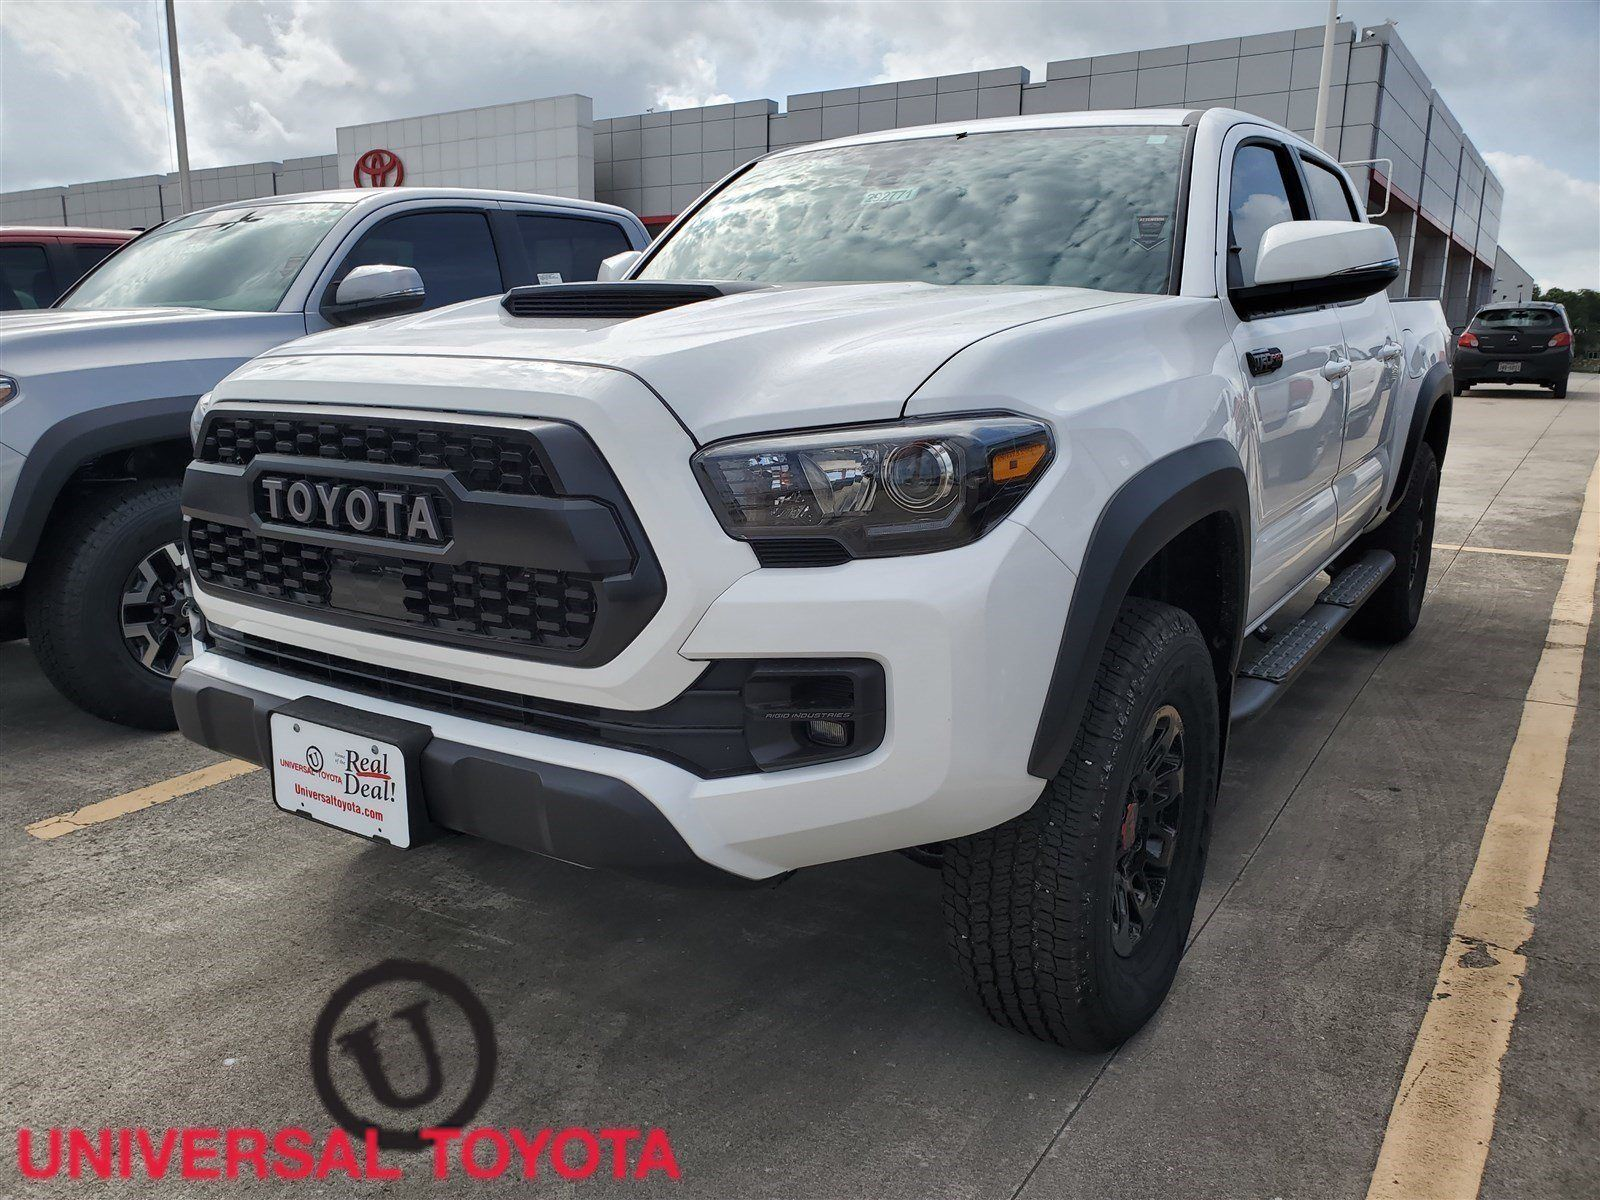 2021 Toyota Tacoma Diesel Trd Pro Price In 2020 Toyota Tacoma